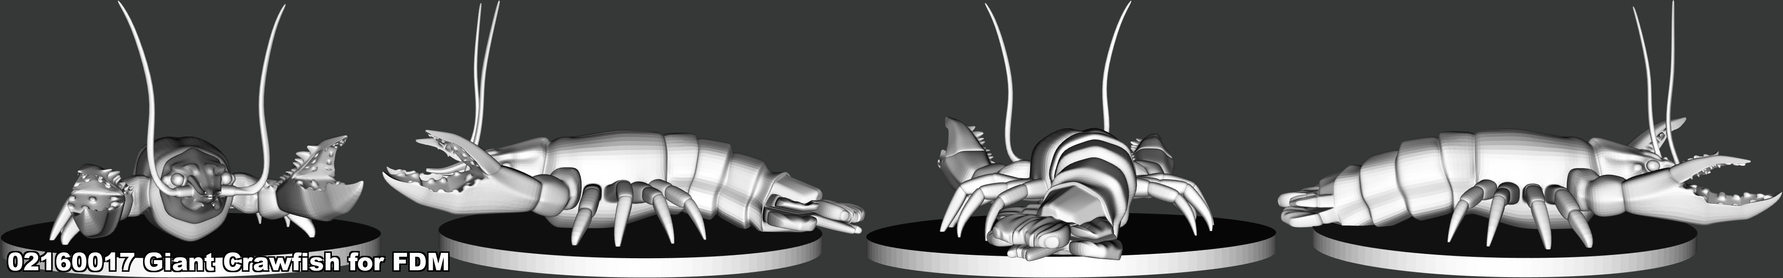 02160017 Giant Crawfish for FDM.png